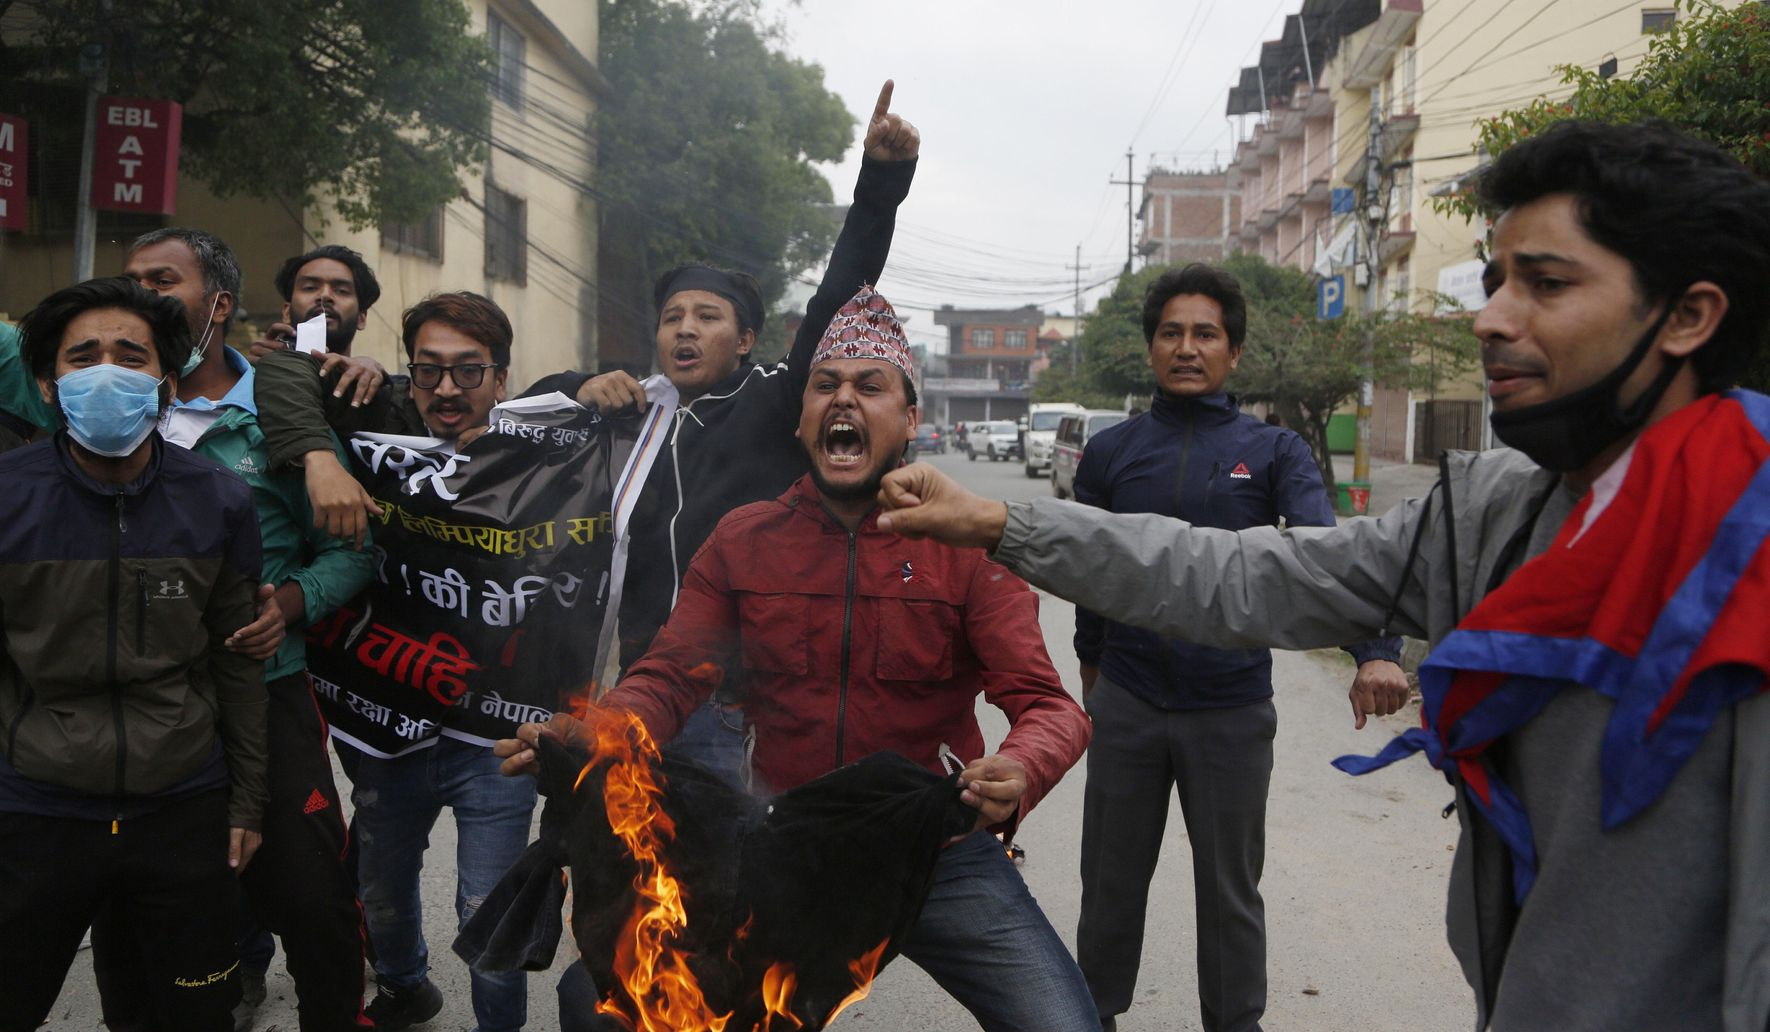 Image of article 'Nepal's parties show rare unity on border dispute with India'